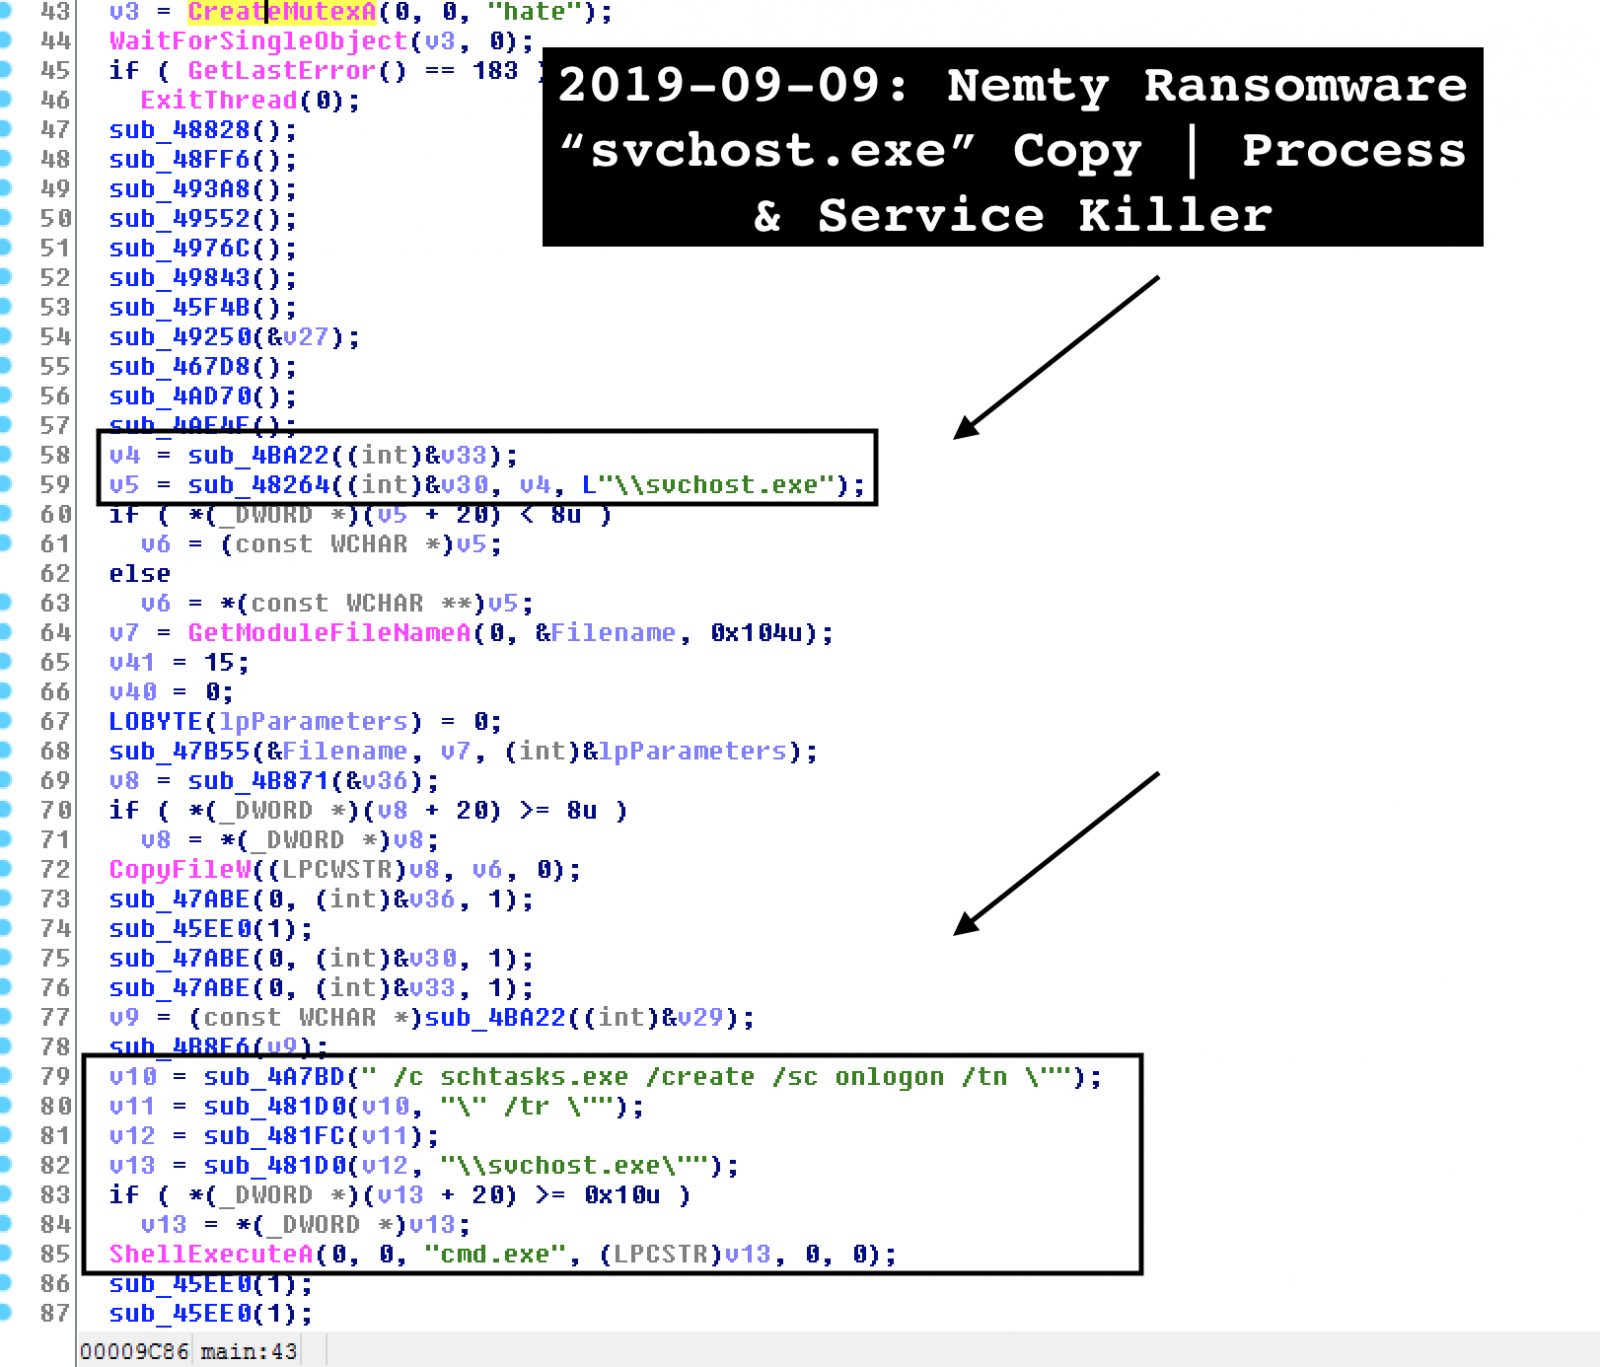 Nemty Ransomware Update Lets It Kill Processes and Services